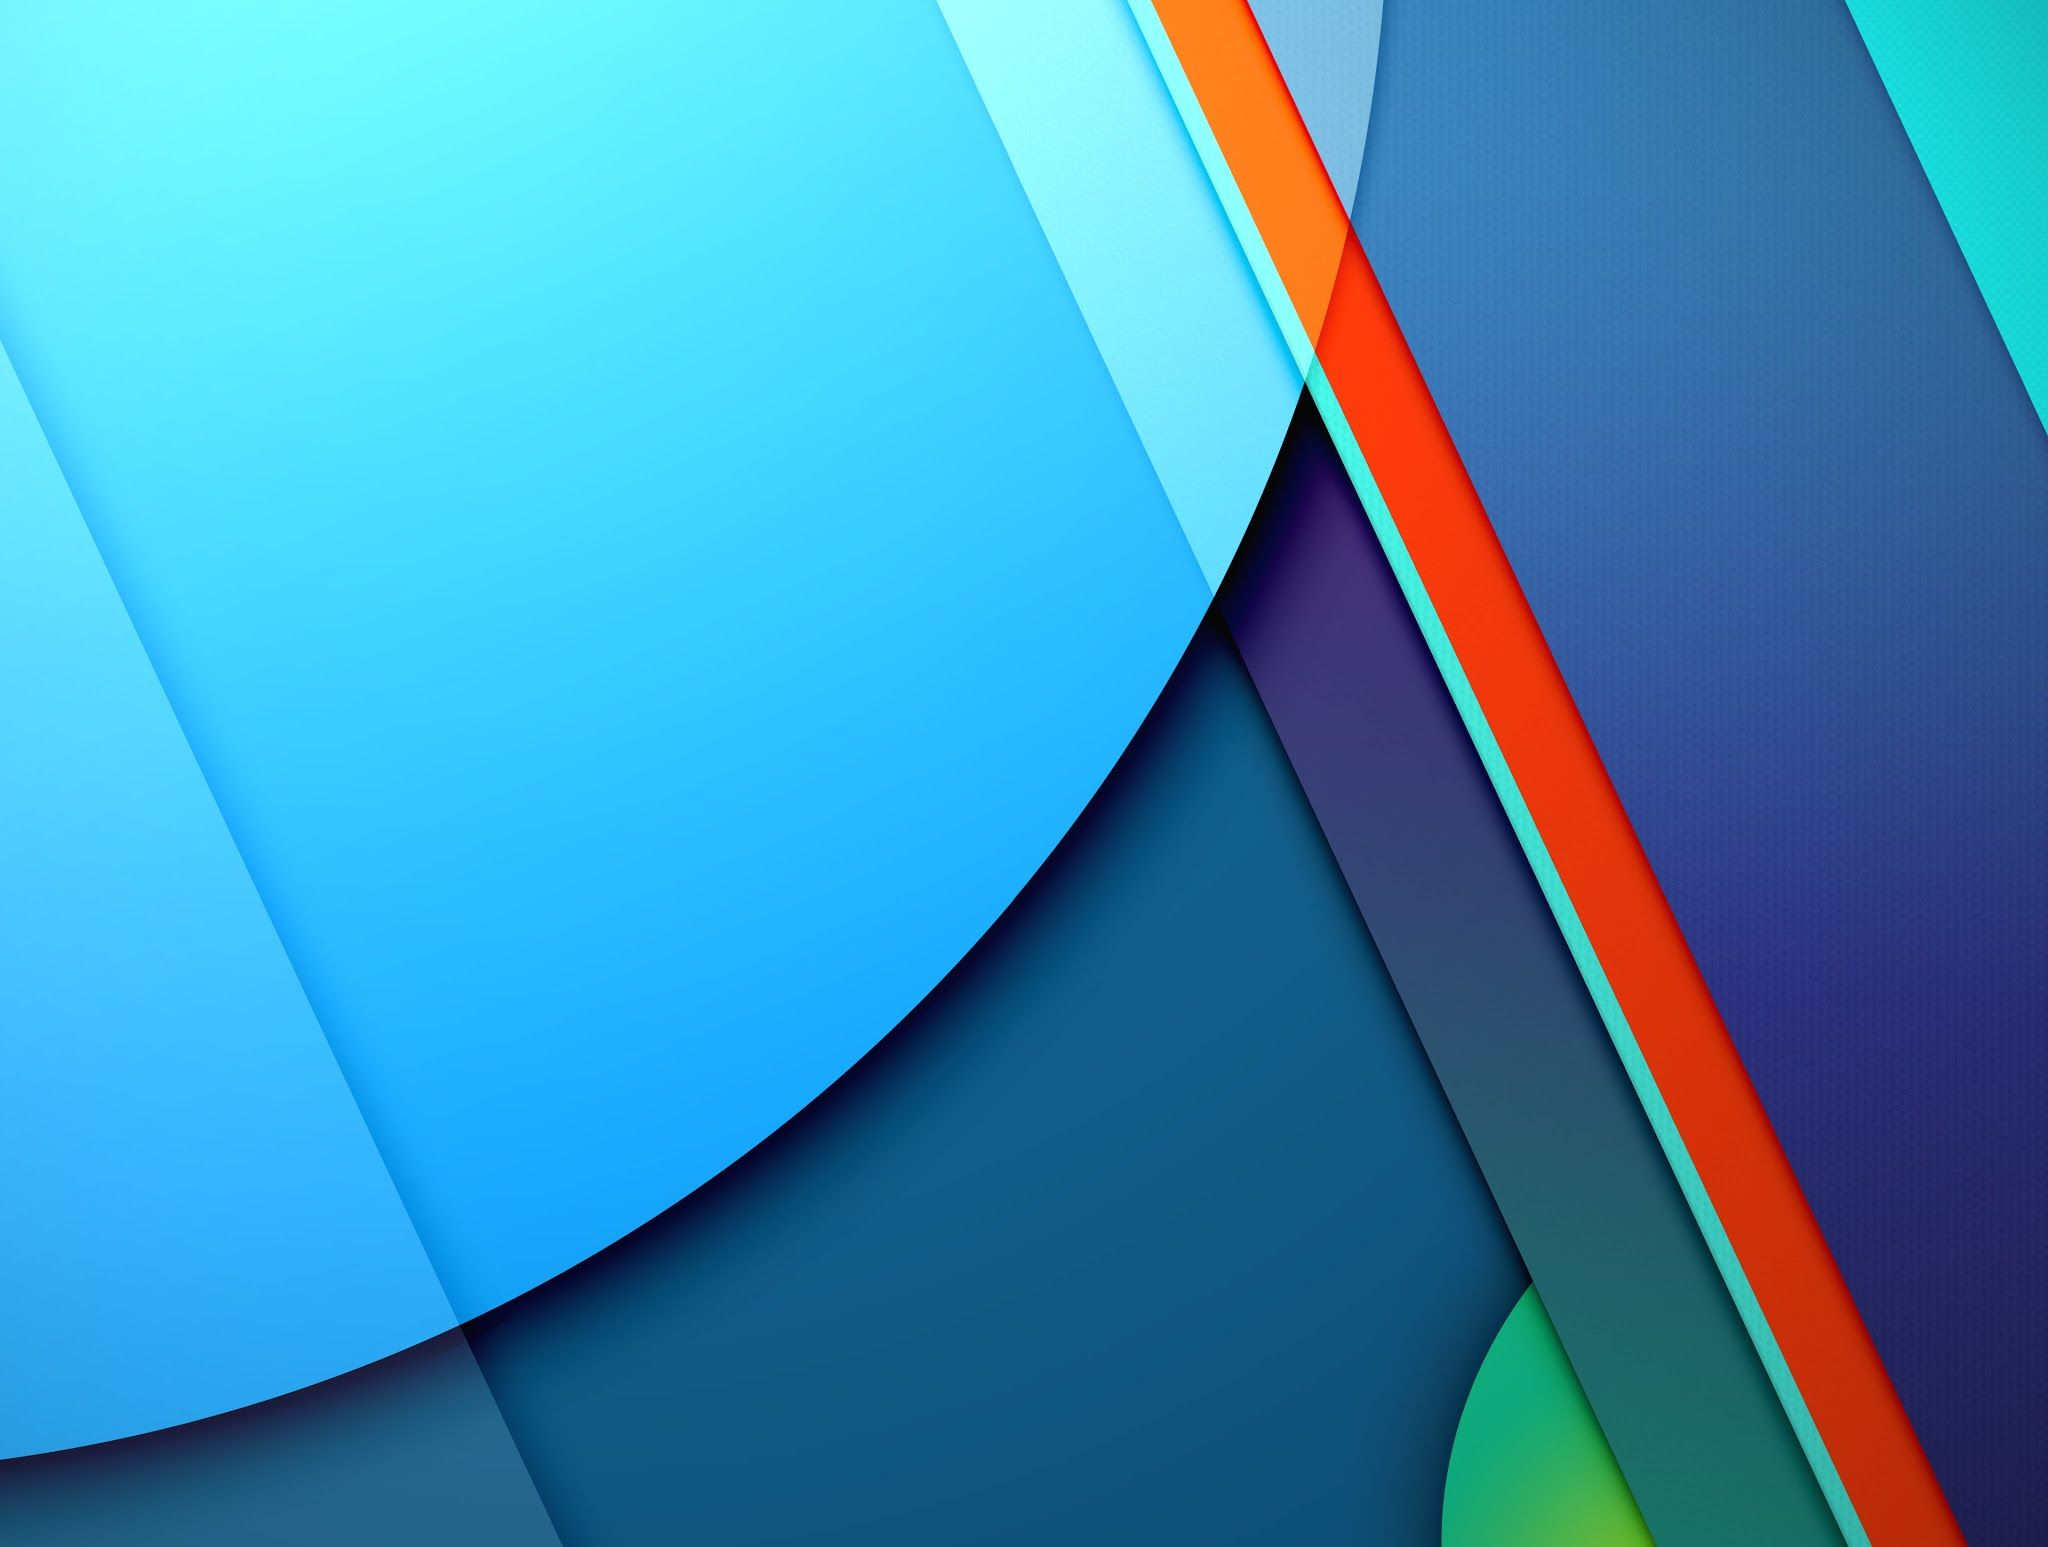 Here is a big collection of cool material design HD